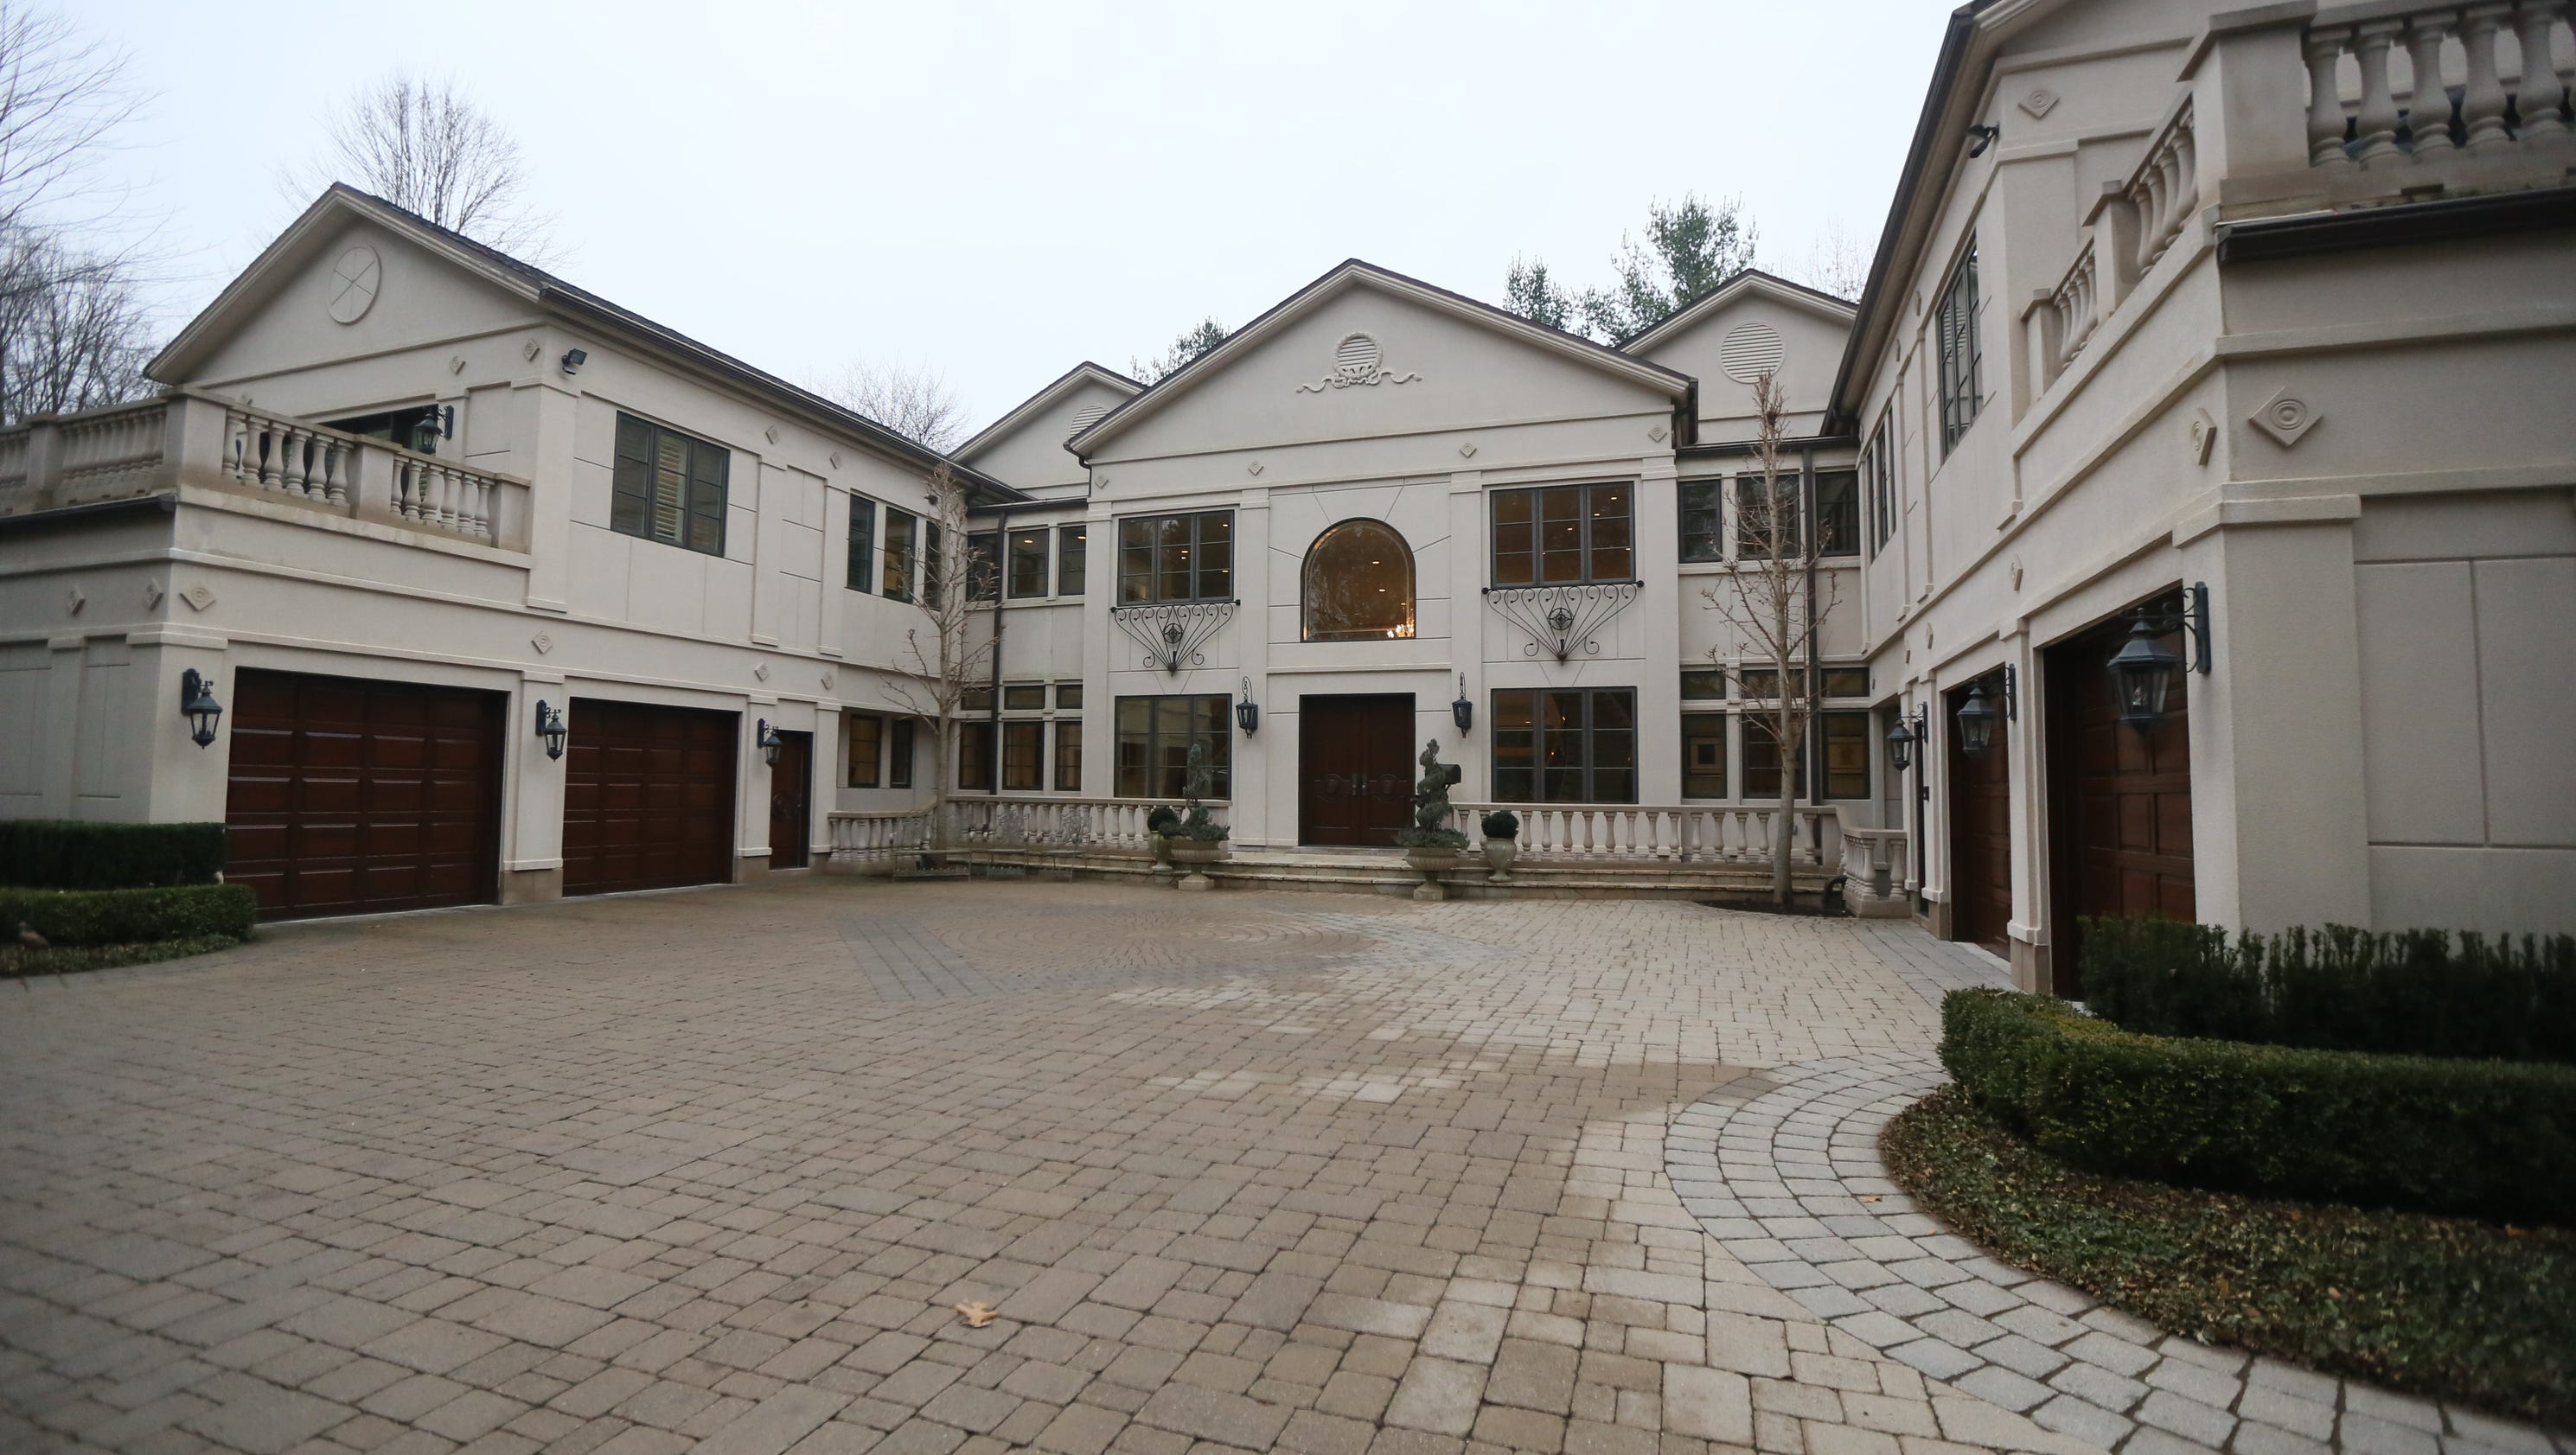 Norman shy 39 s custom built mansion in 2013 for Custom mansions